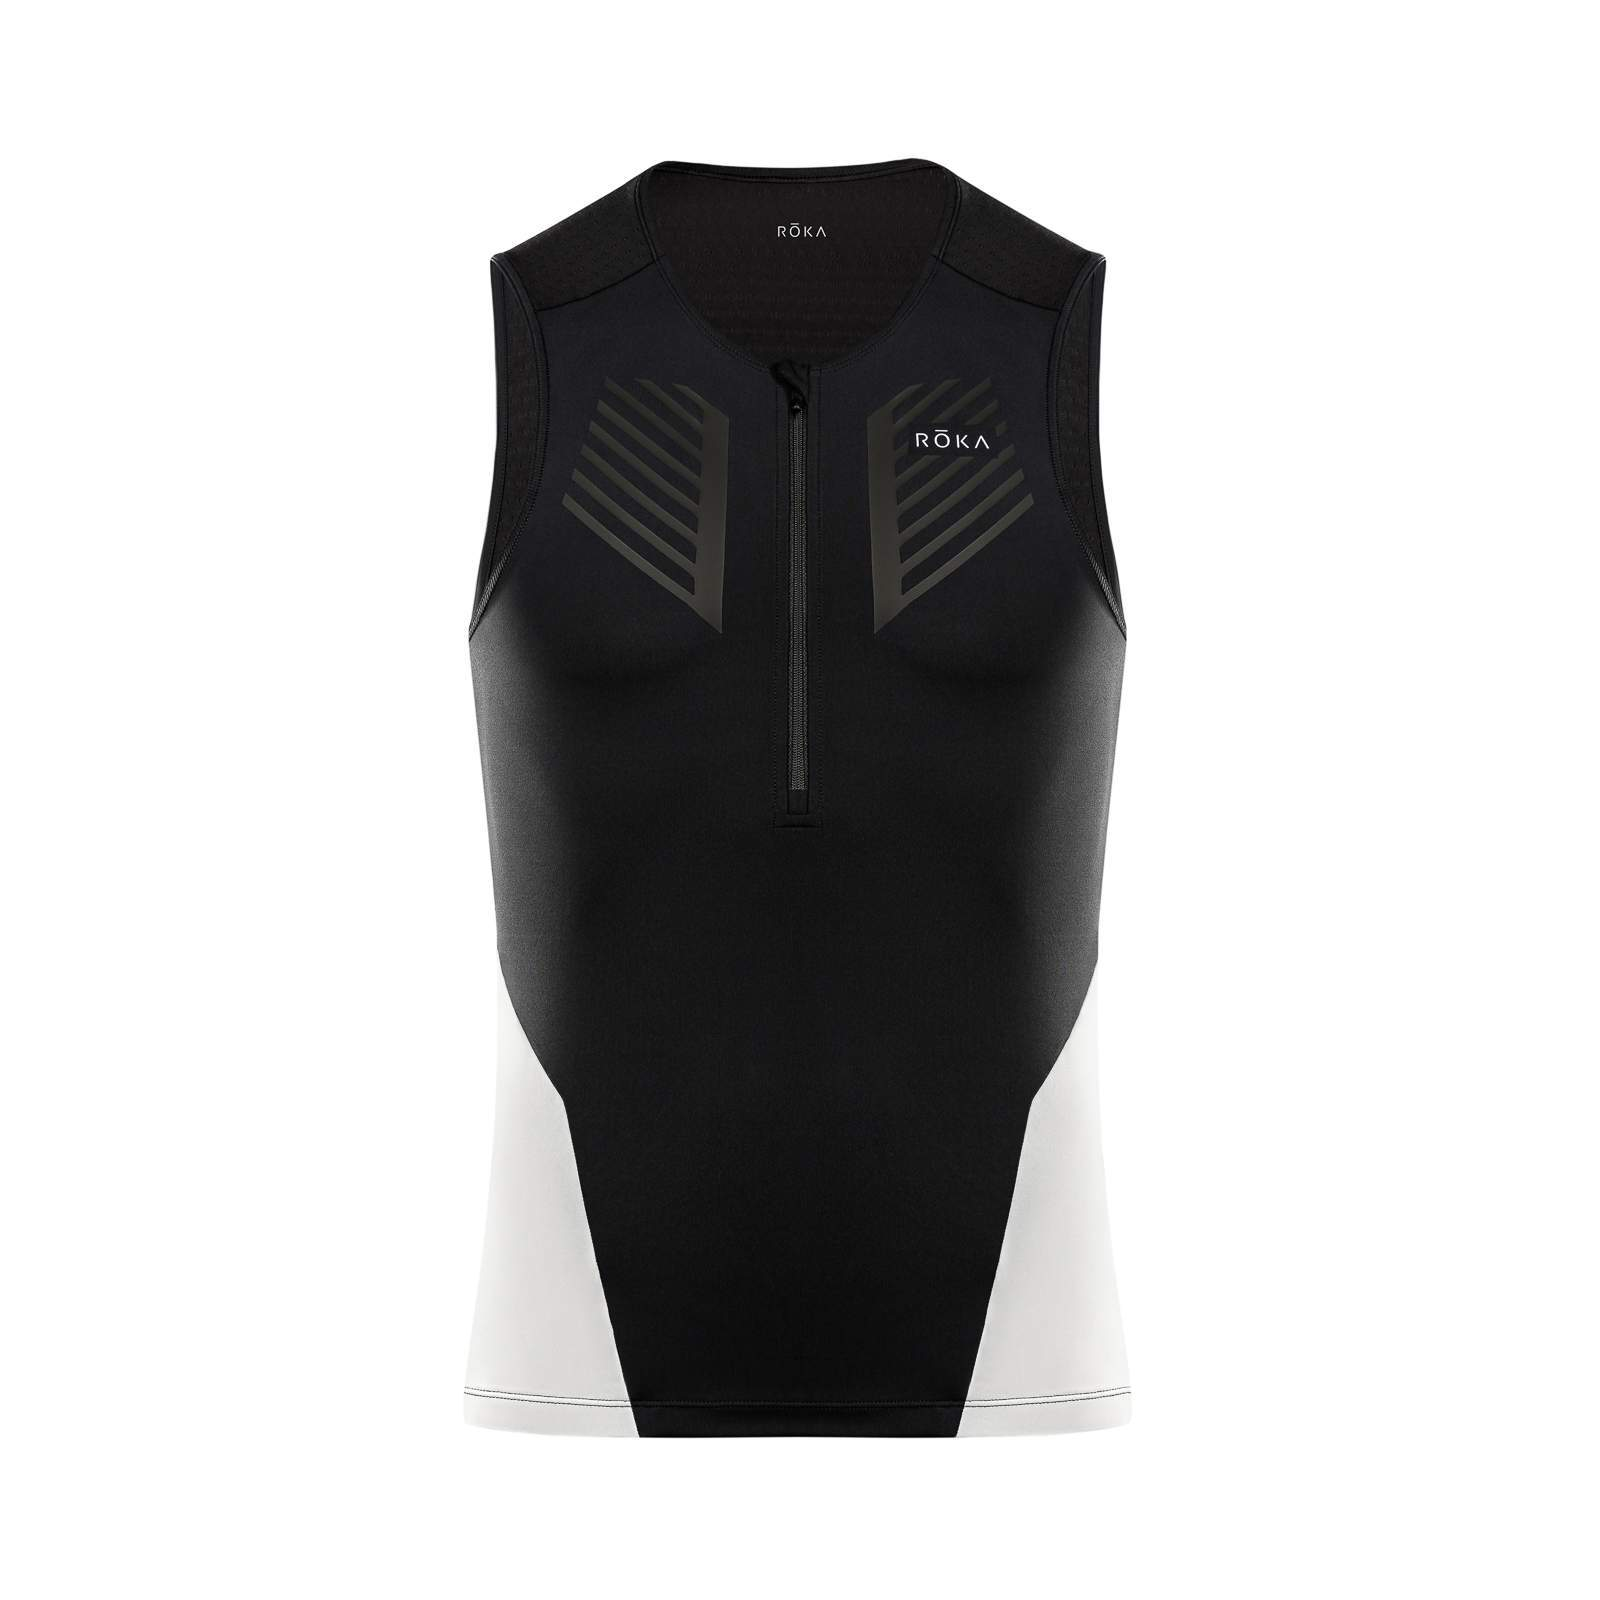 Men's Comp Sleeveless Tri Top - Black